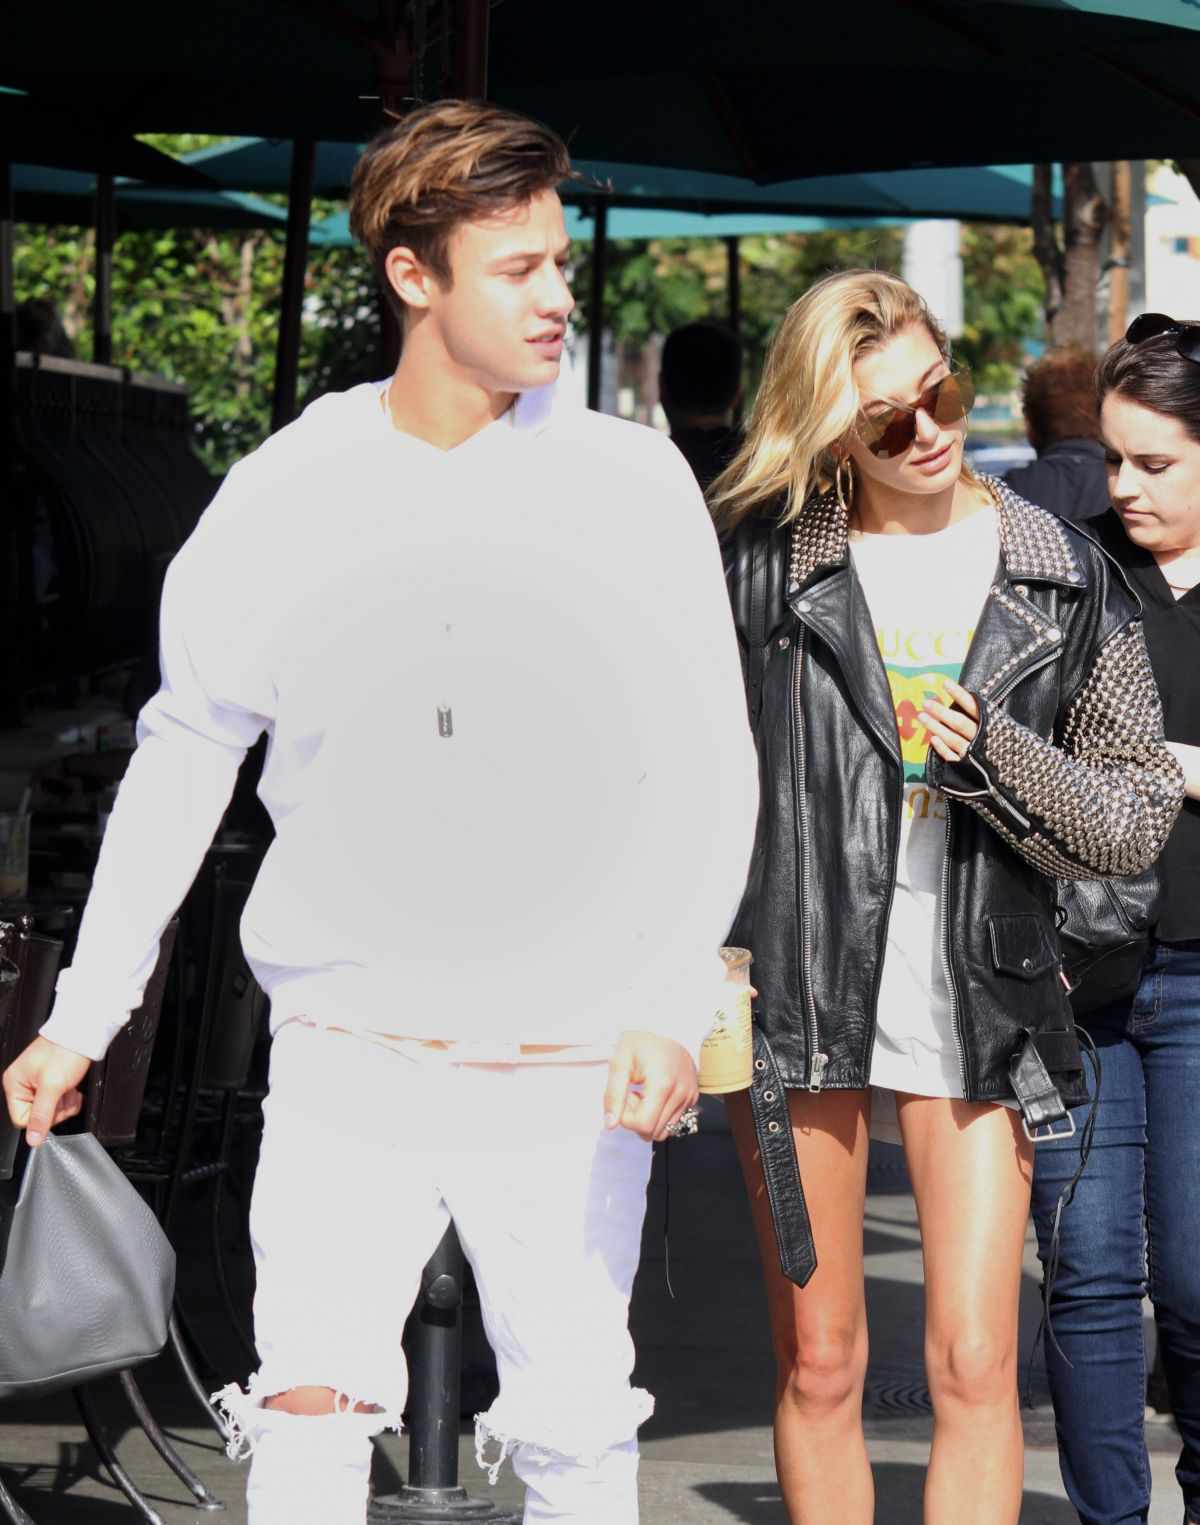 Hailey Baldwin And Cameron Dallas At Urth Cafe In Los Angeles 04 24